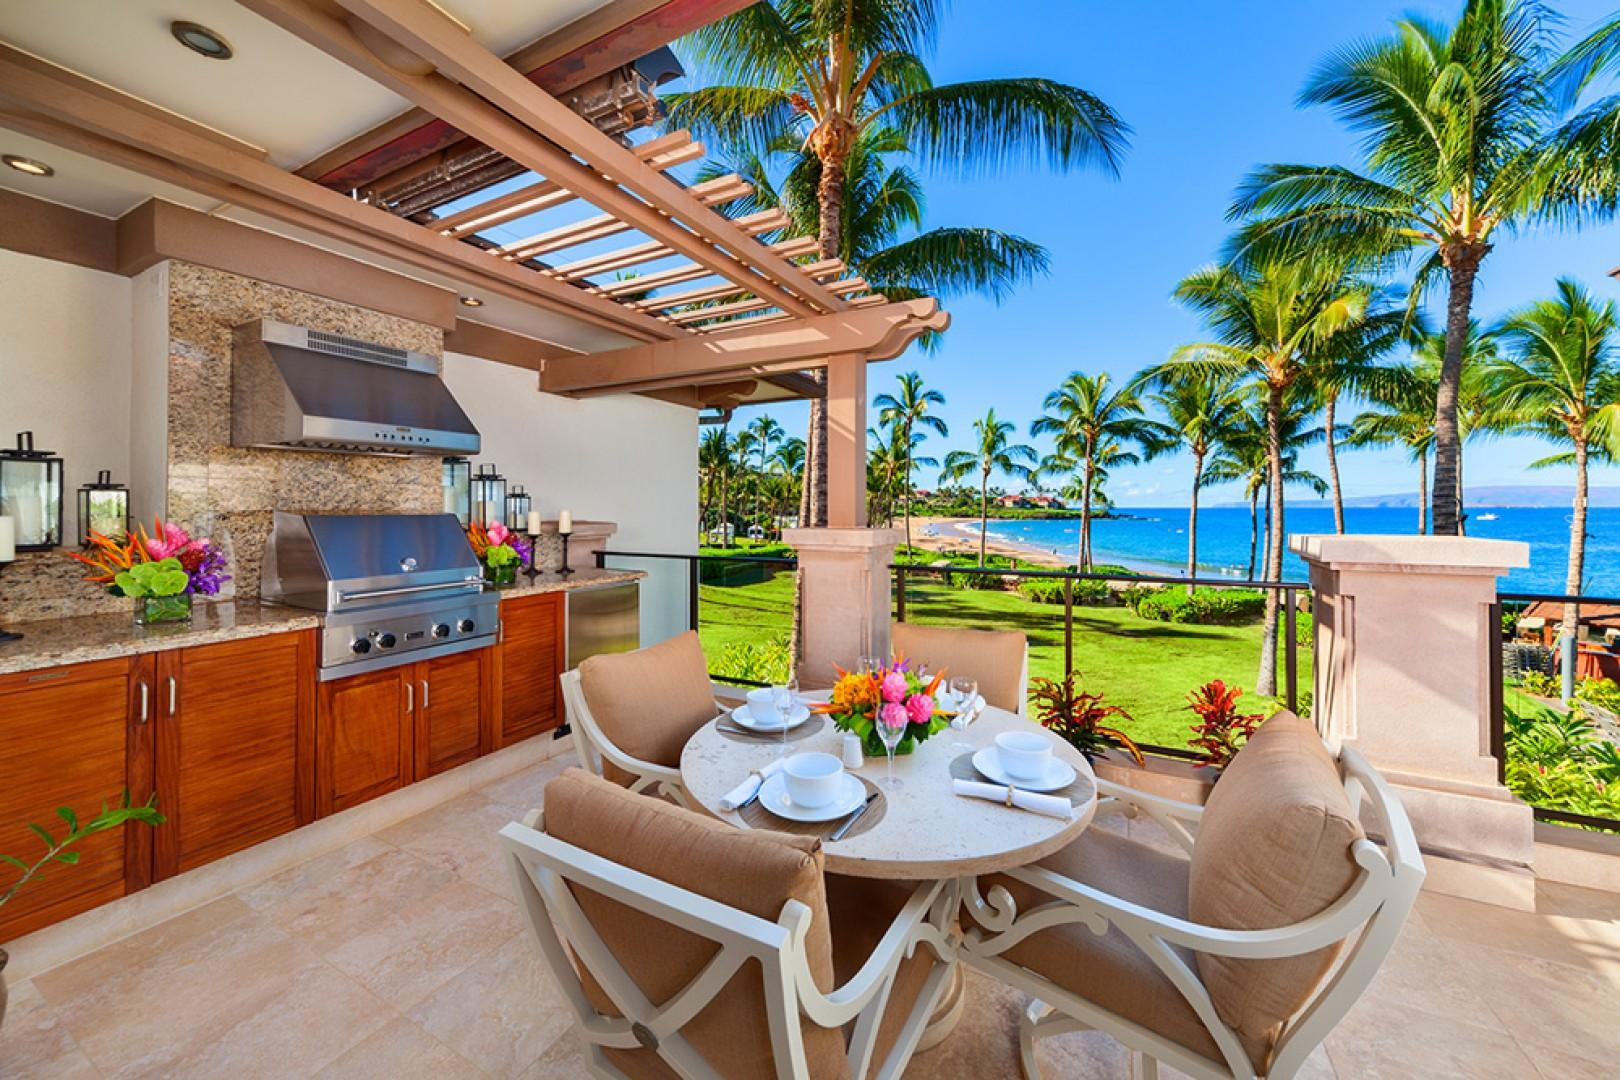 A201 Set Directly Above Wailea Beach with Panoramic Ocean and Beach Views, Comfortable Outdoor Dining, BBQ, and Chaise Lounge Chairs!